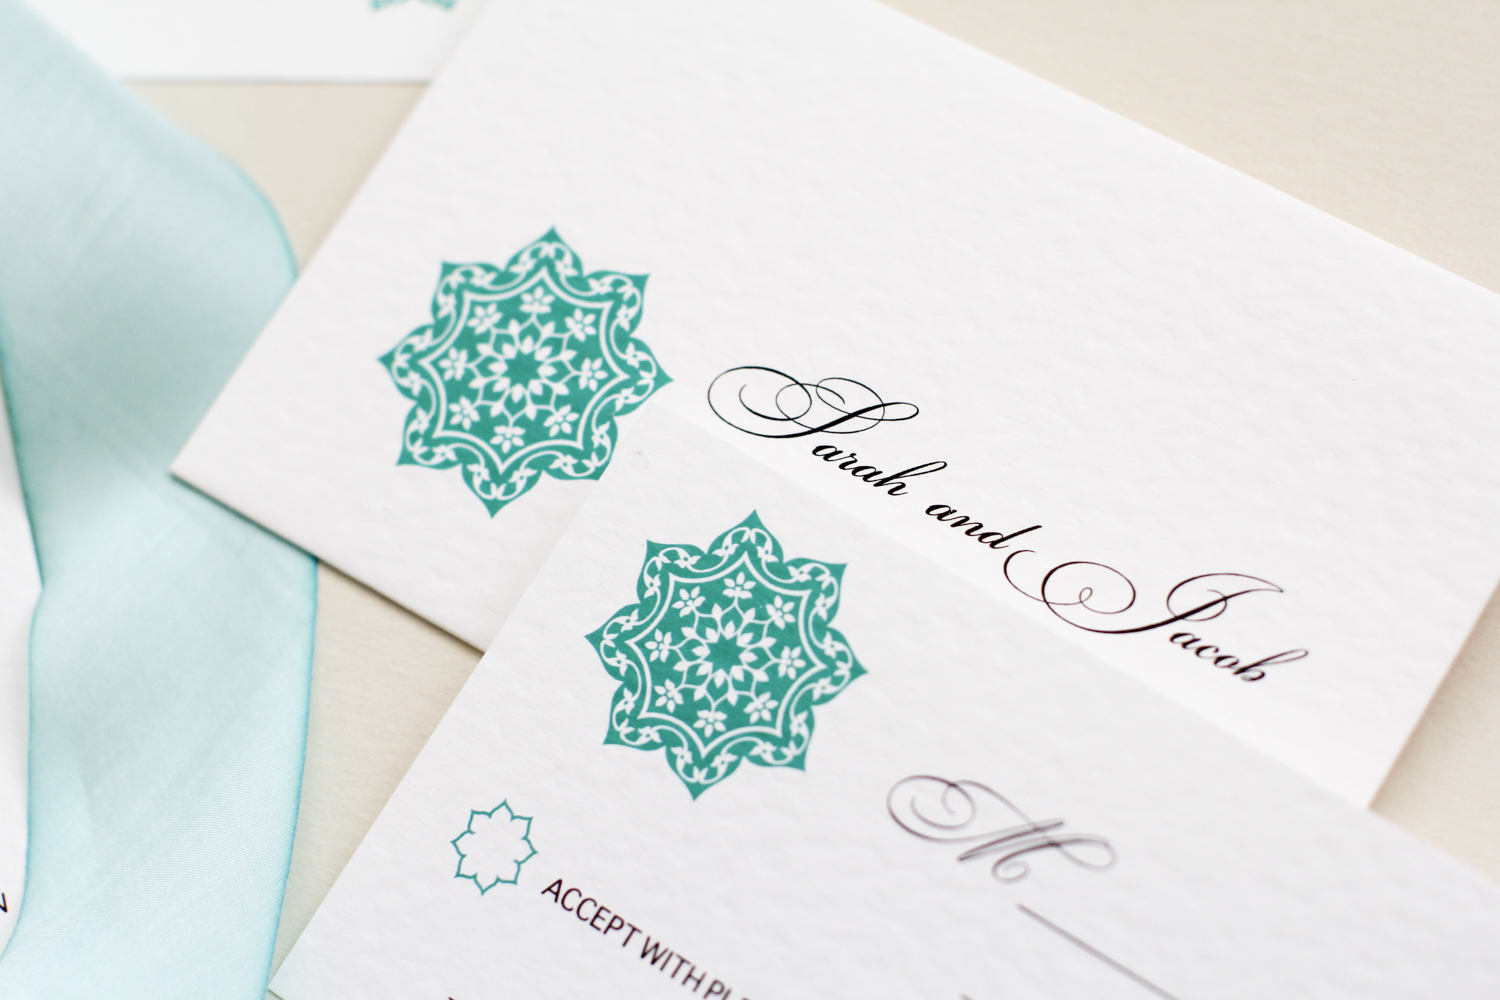 teal rosette design on envelopes